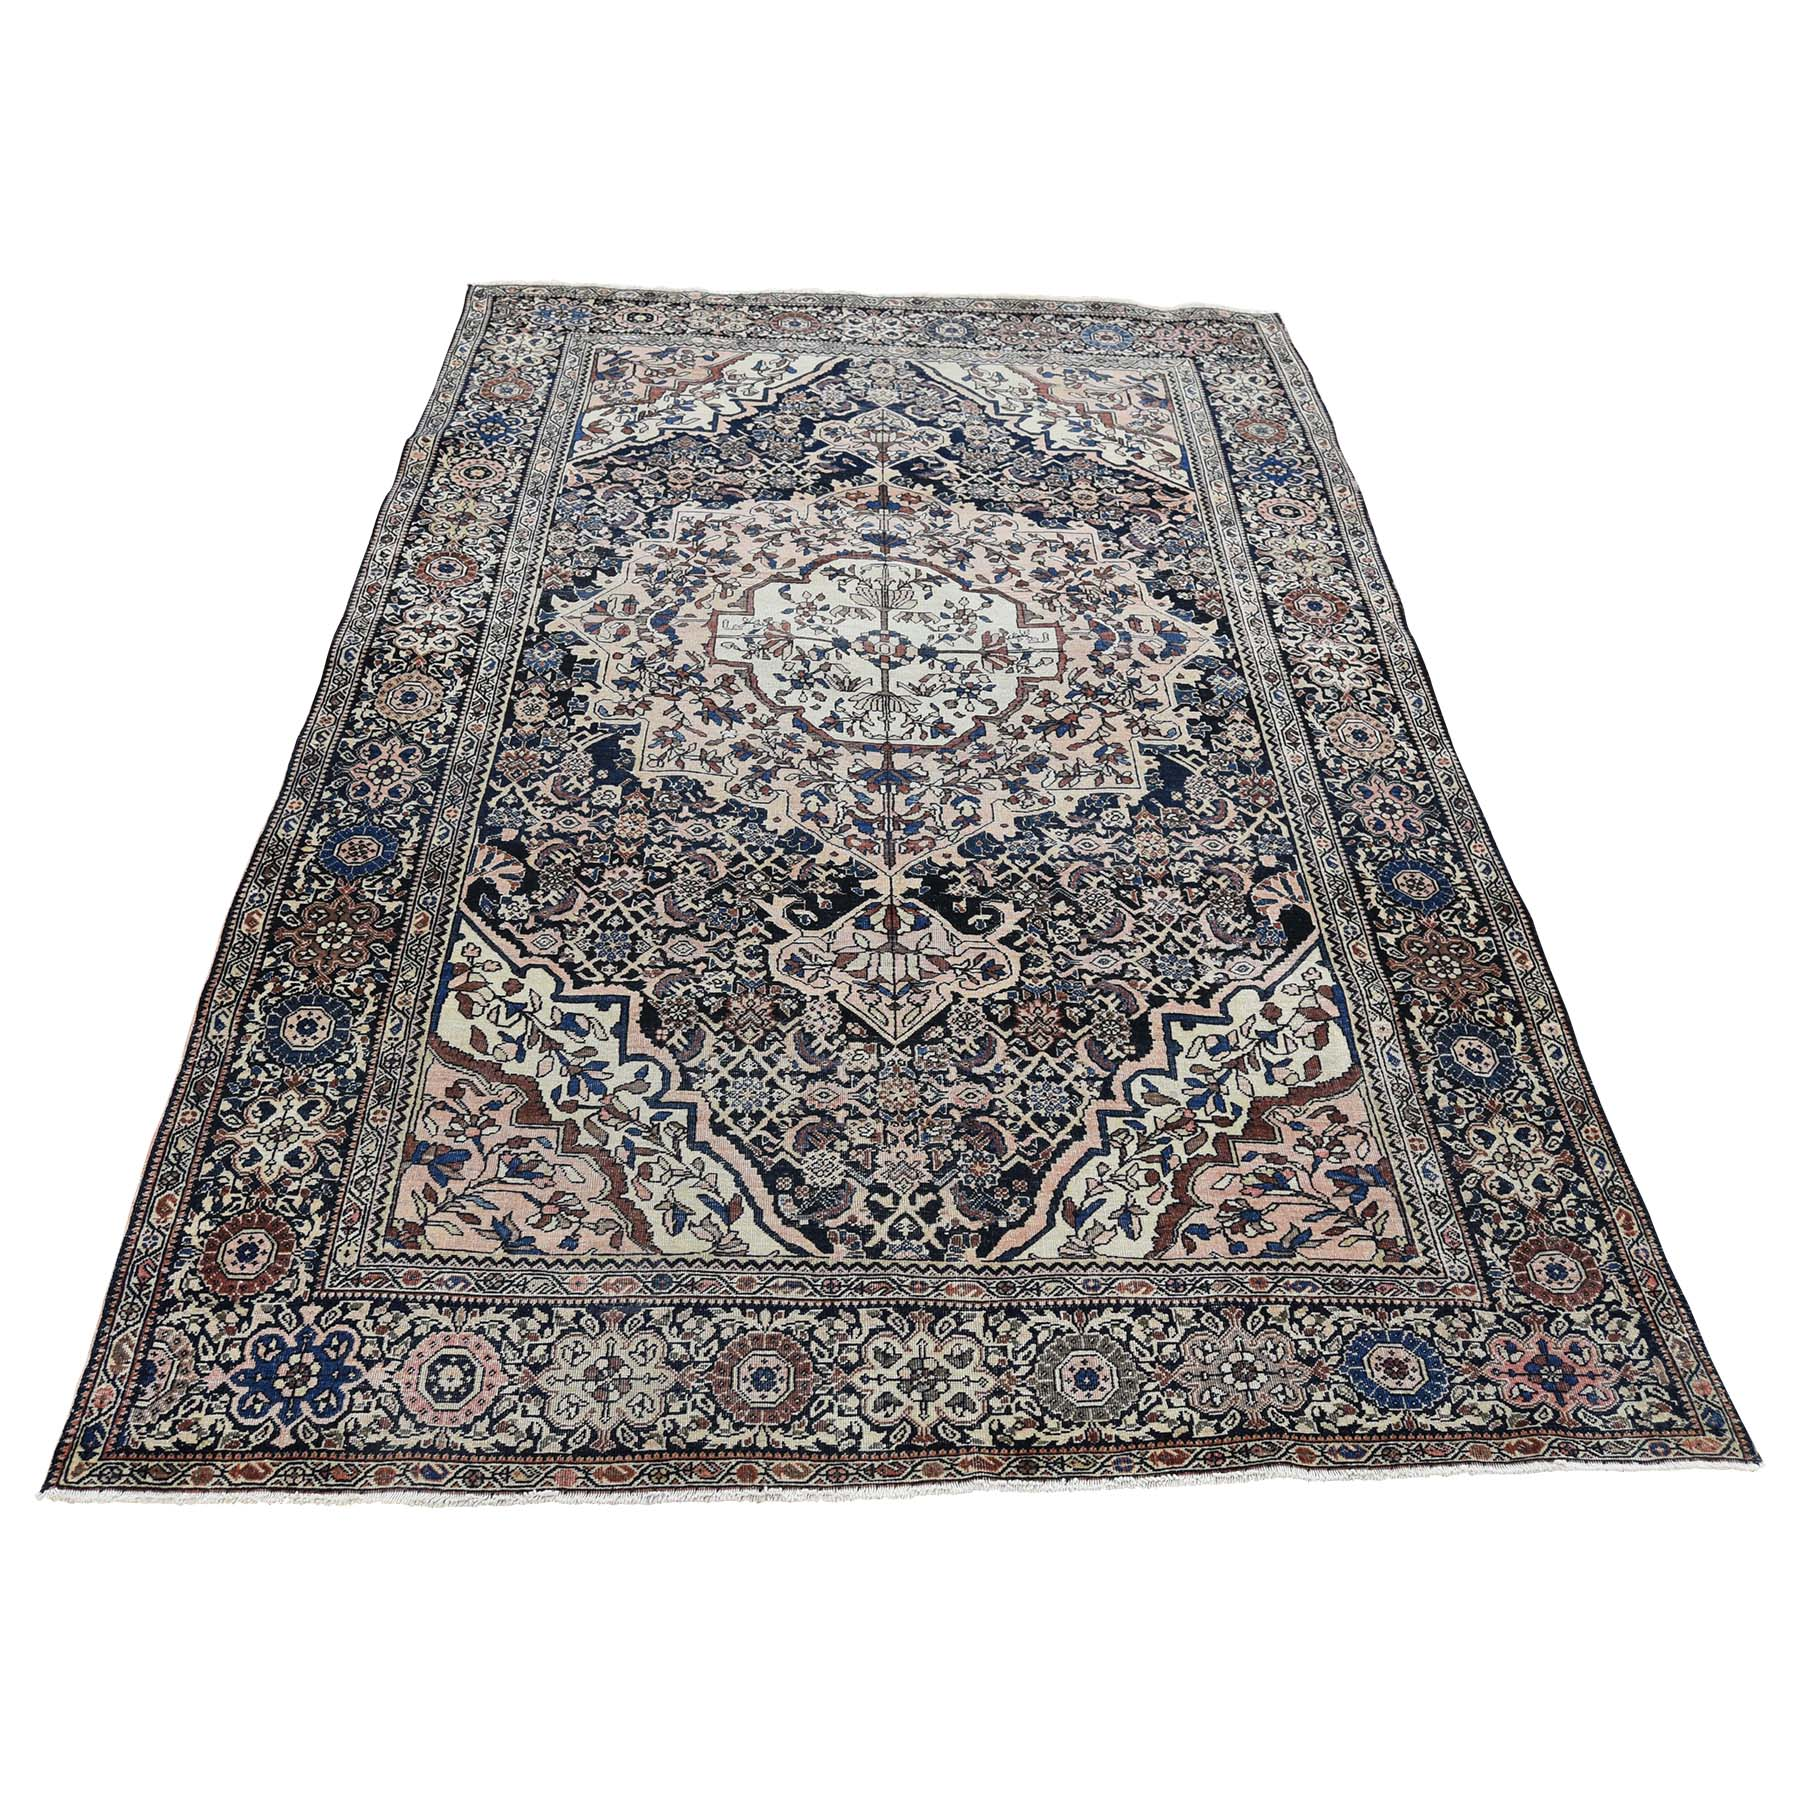 4'X6'3'' Antique Persian Fereghan Sarouk Dense Weave Even Wear Hand-Knotted Rug moac9070